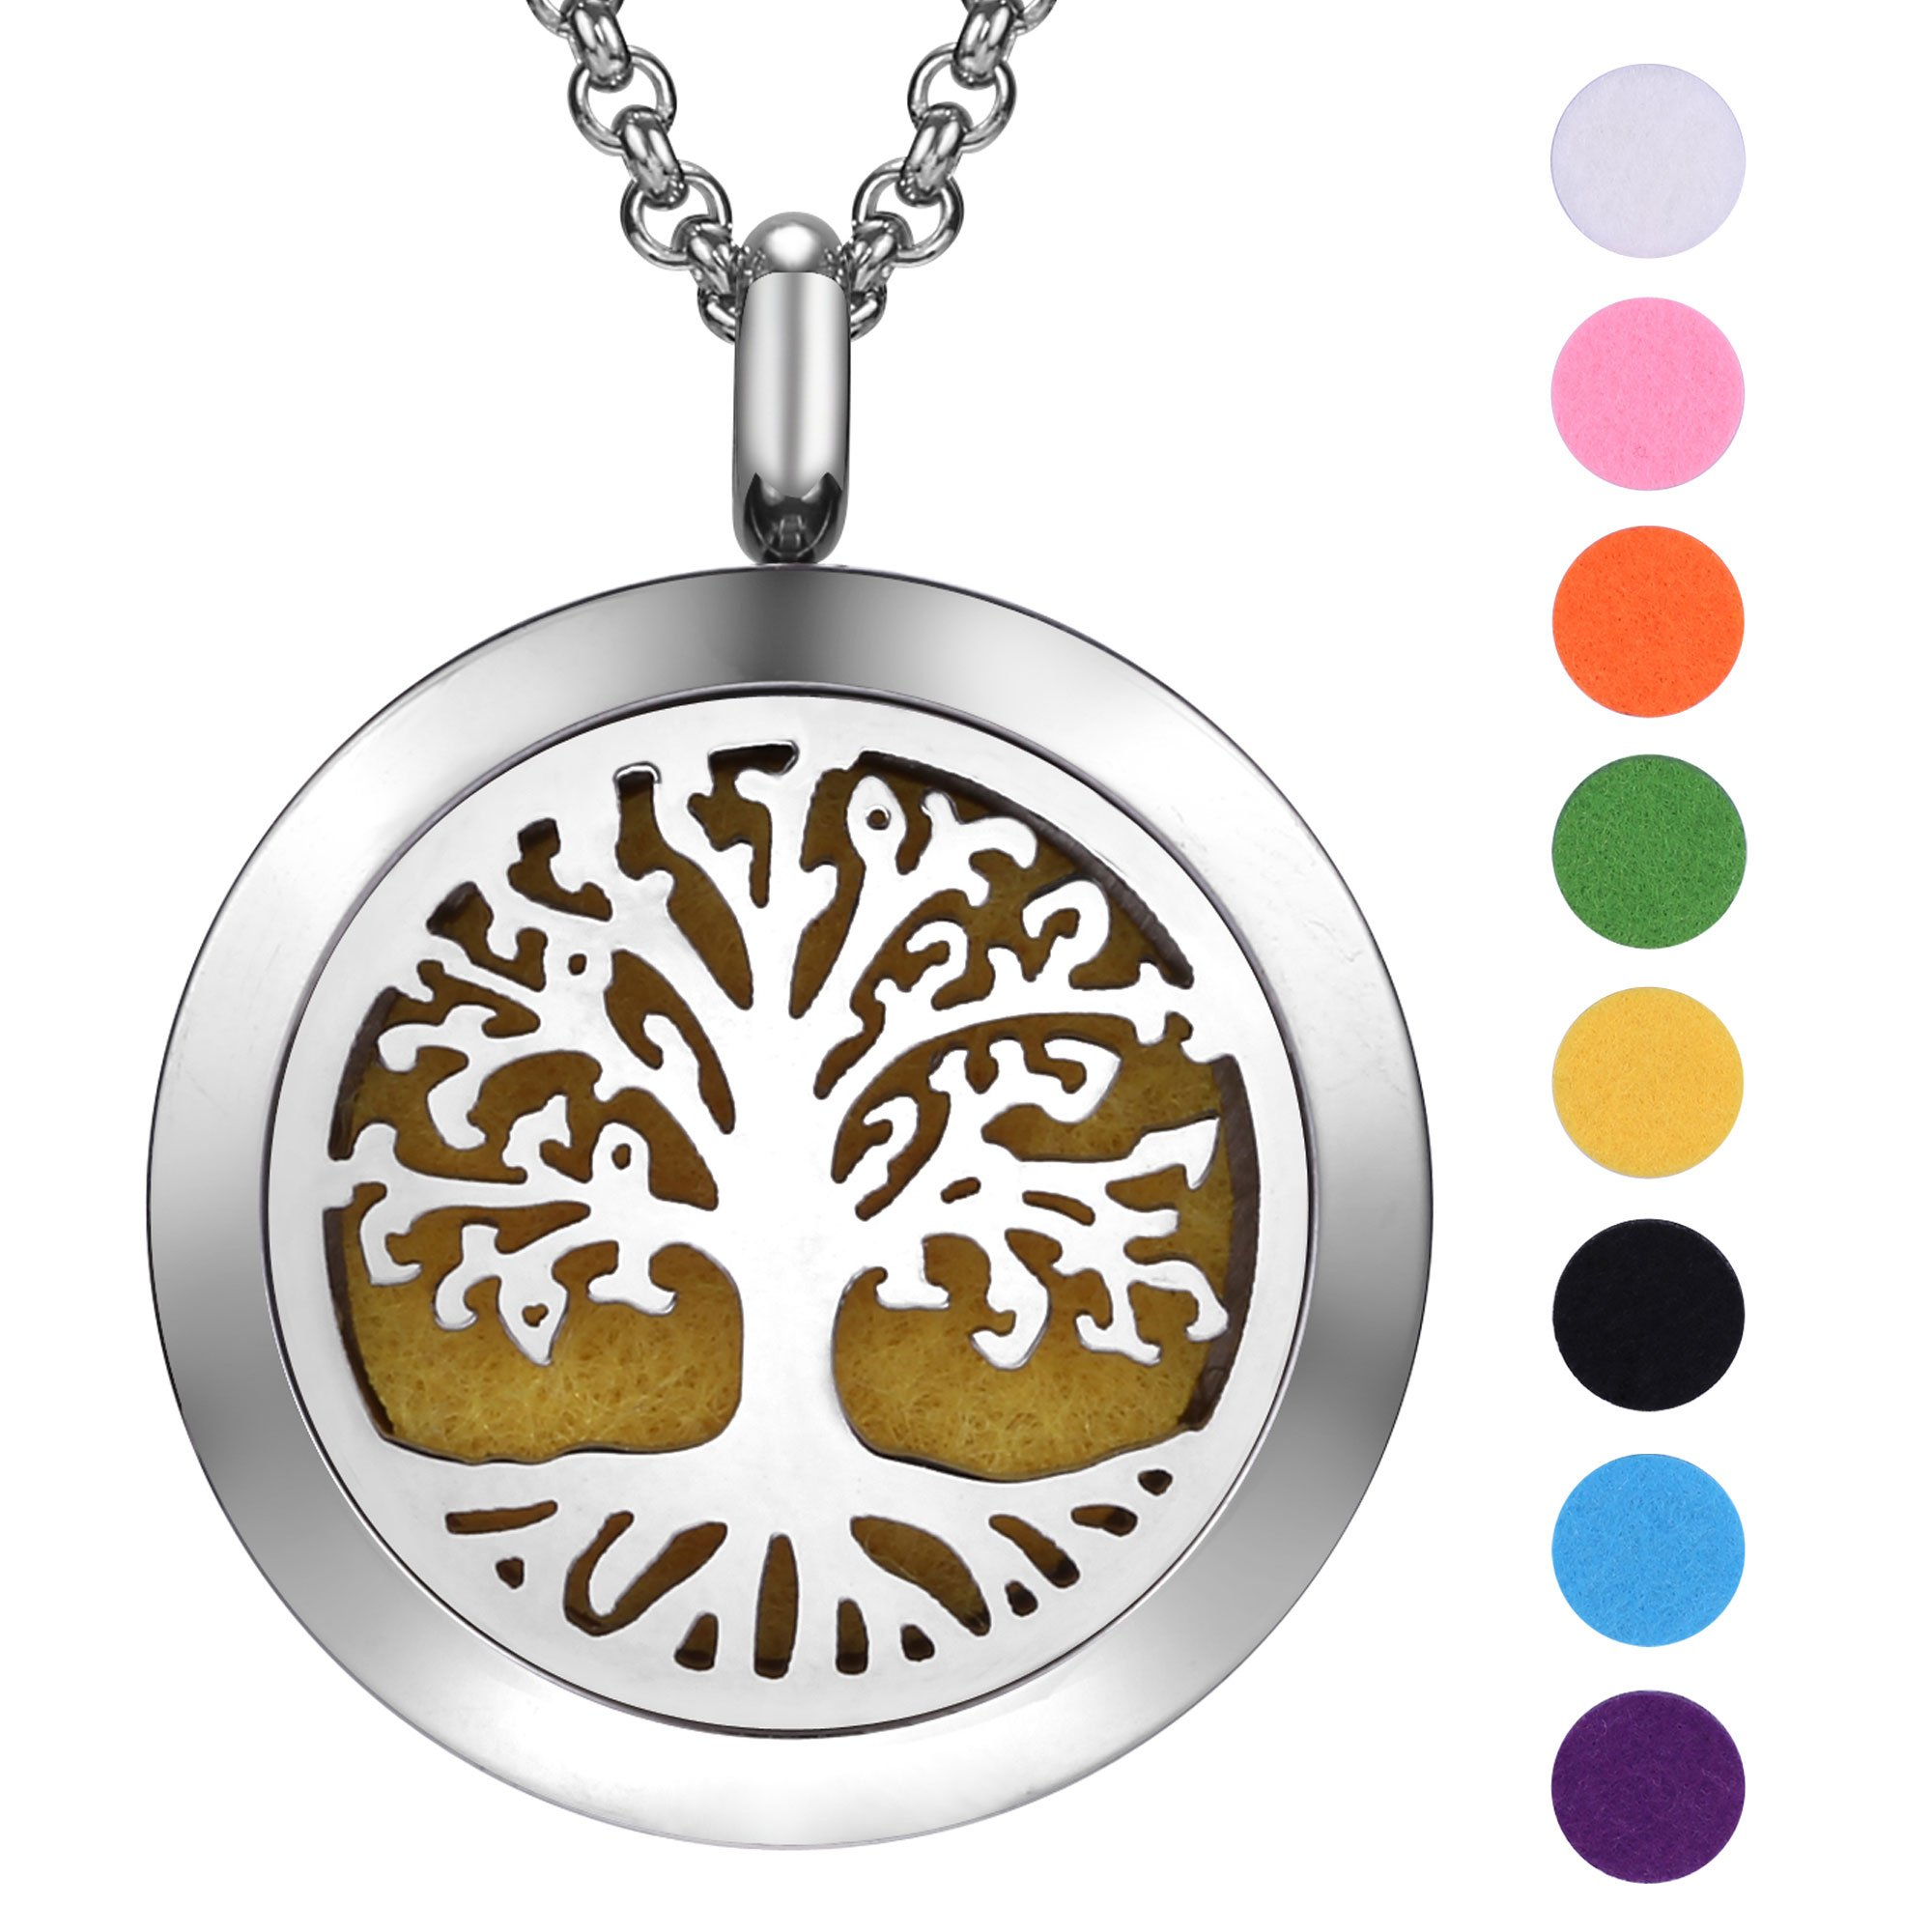 stamped breathe necklace jewelry products il natural essential locket oil diffuser fullxfull healing hand